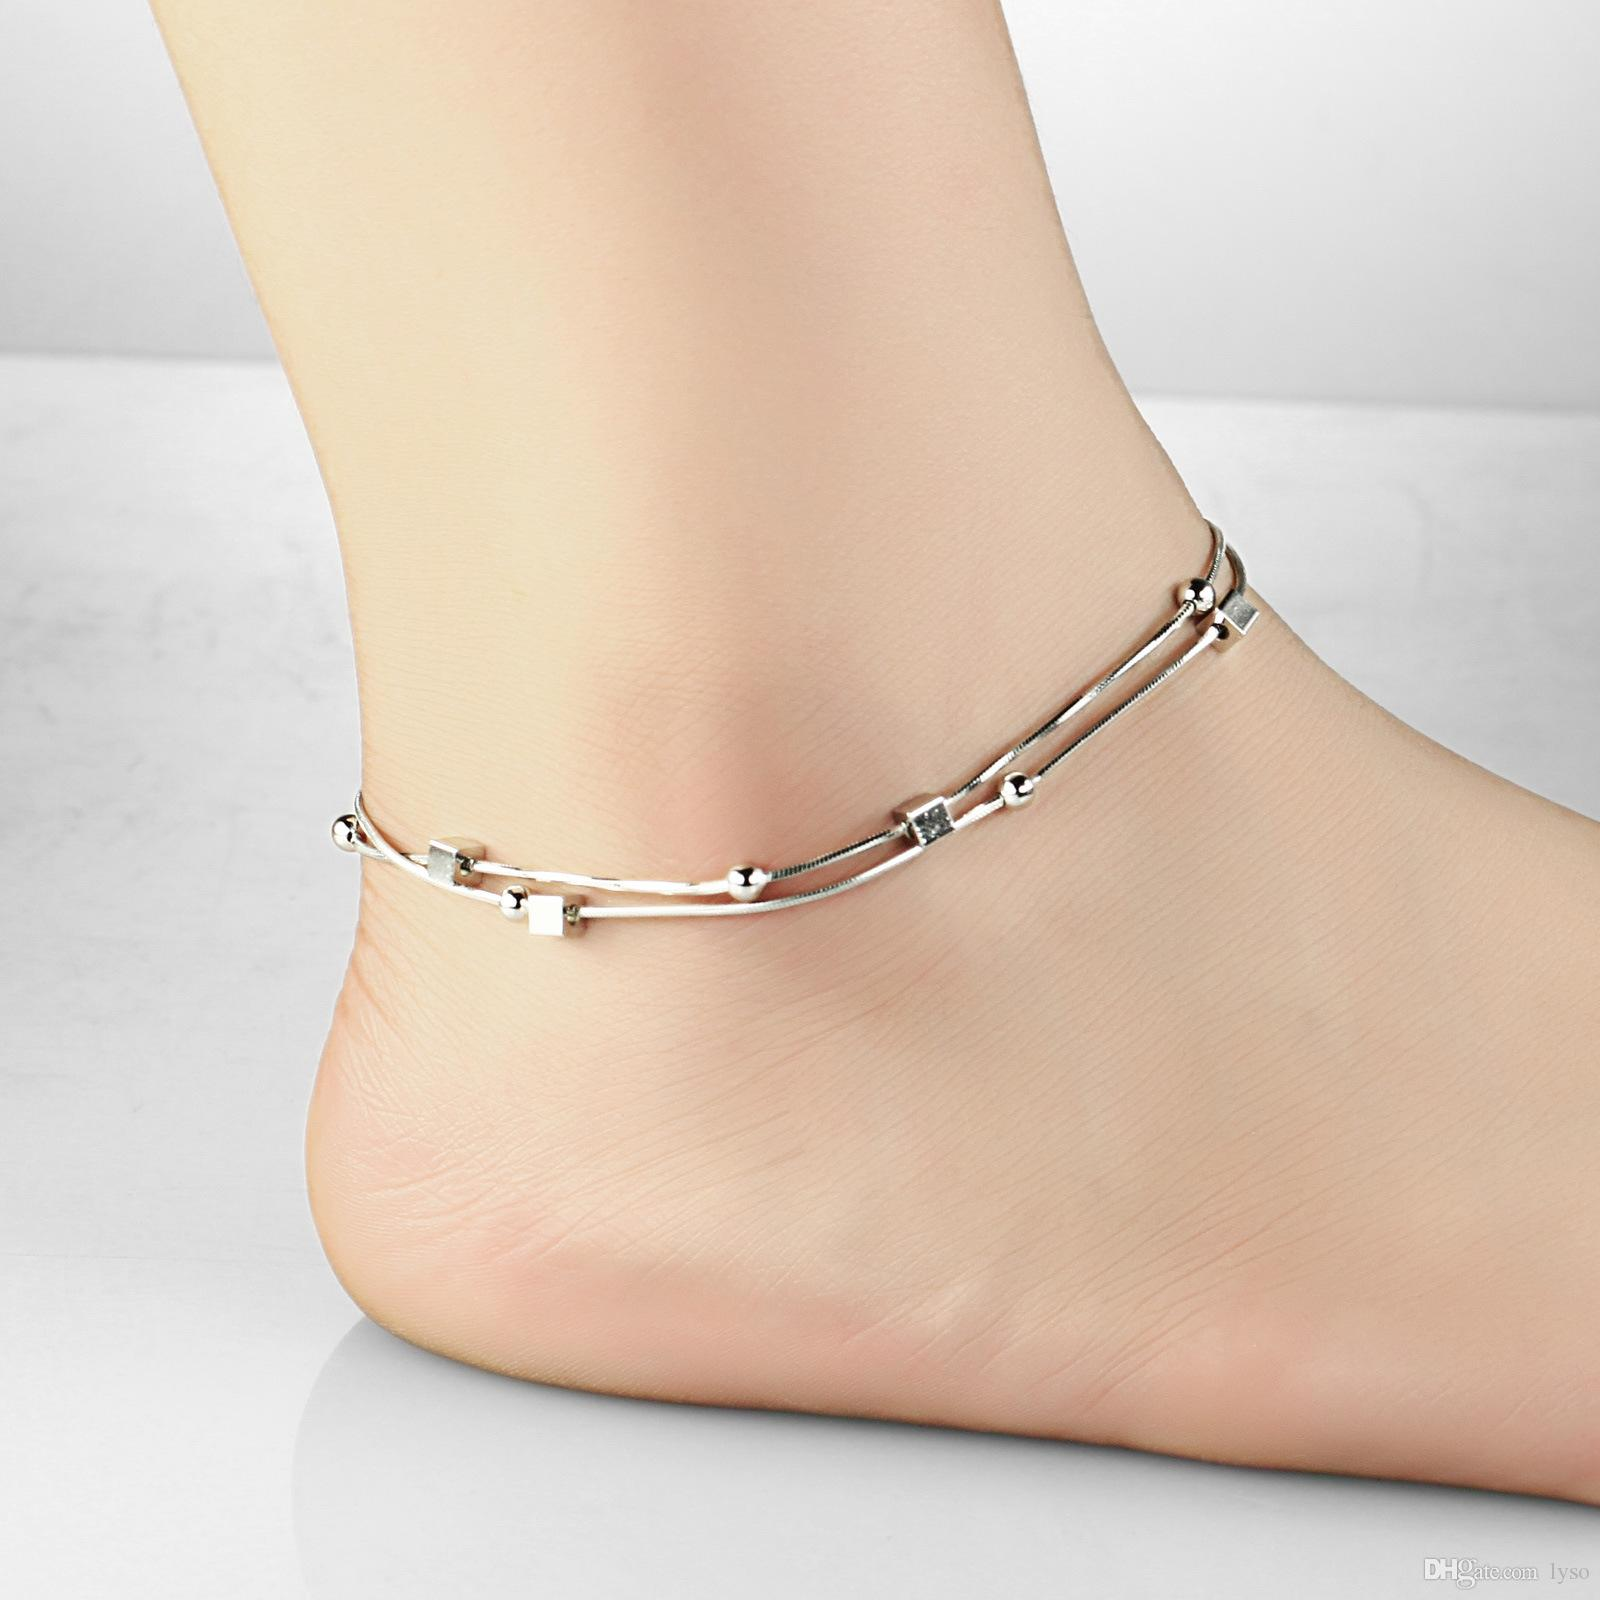 anklets buy silver payal girls alloy online home for india women anklet designer in